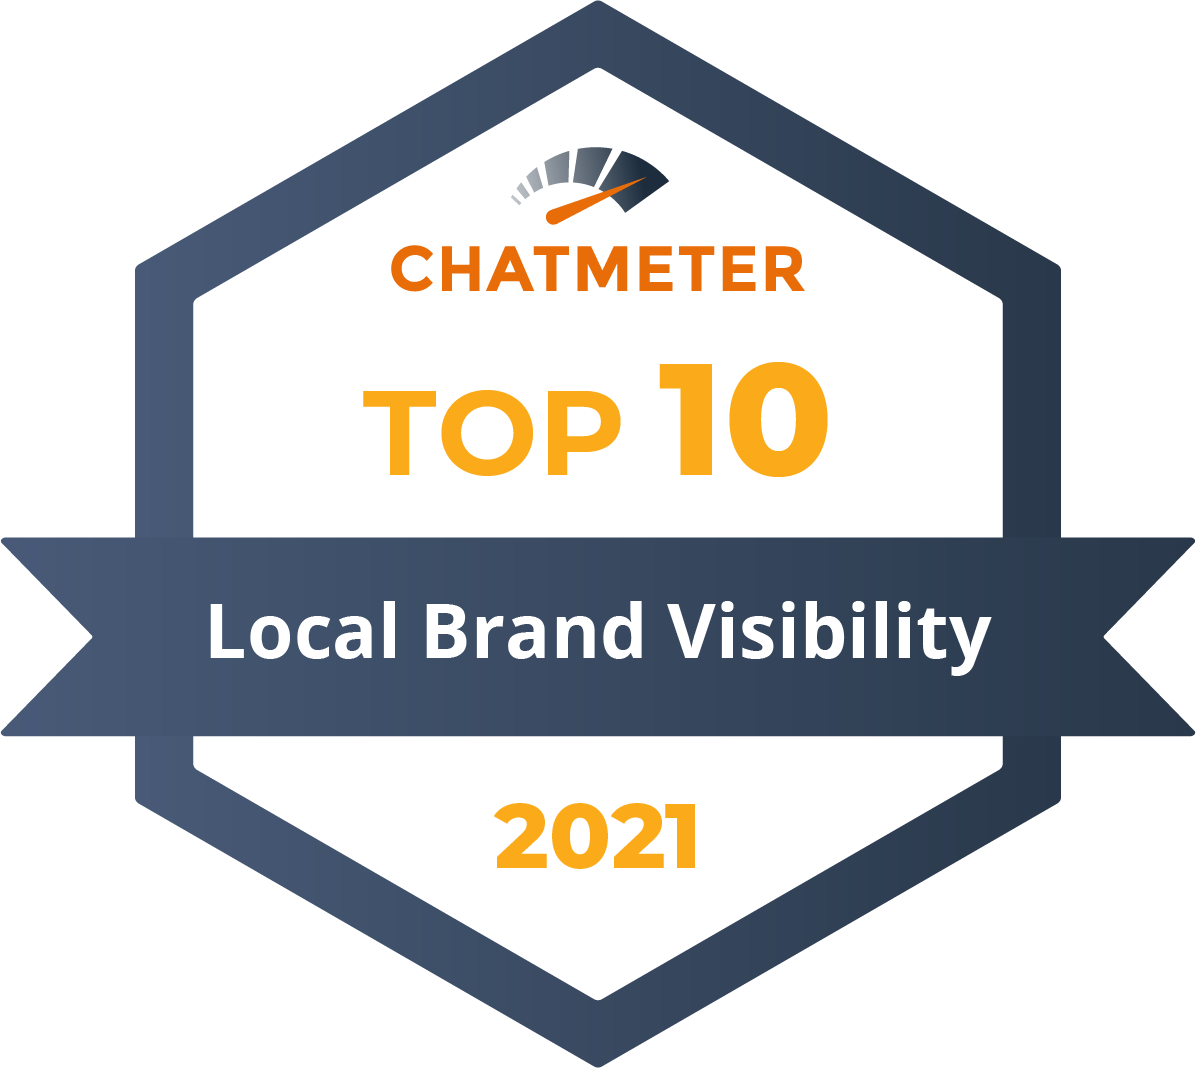 TOP 10 Badge - Local Brand Visibility